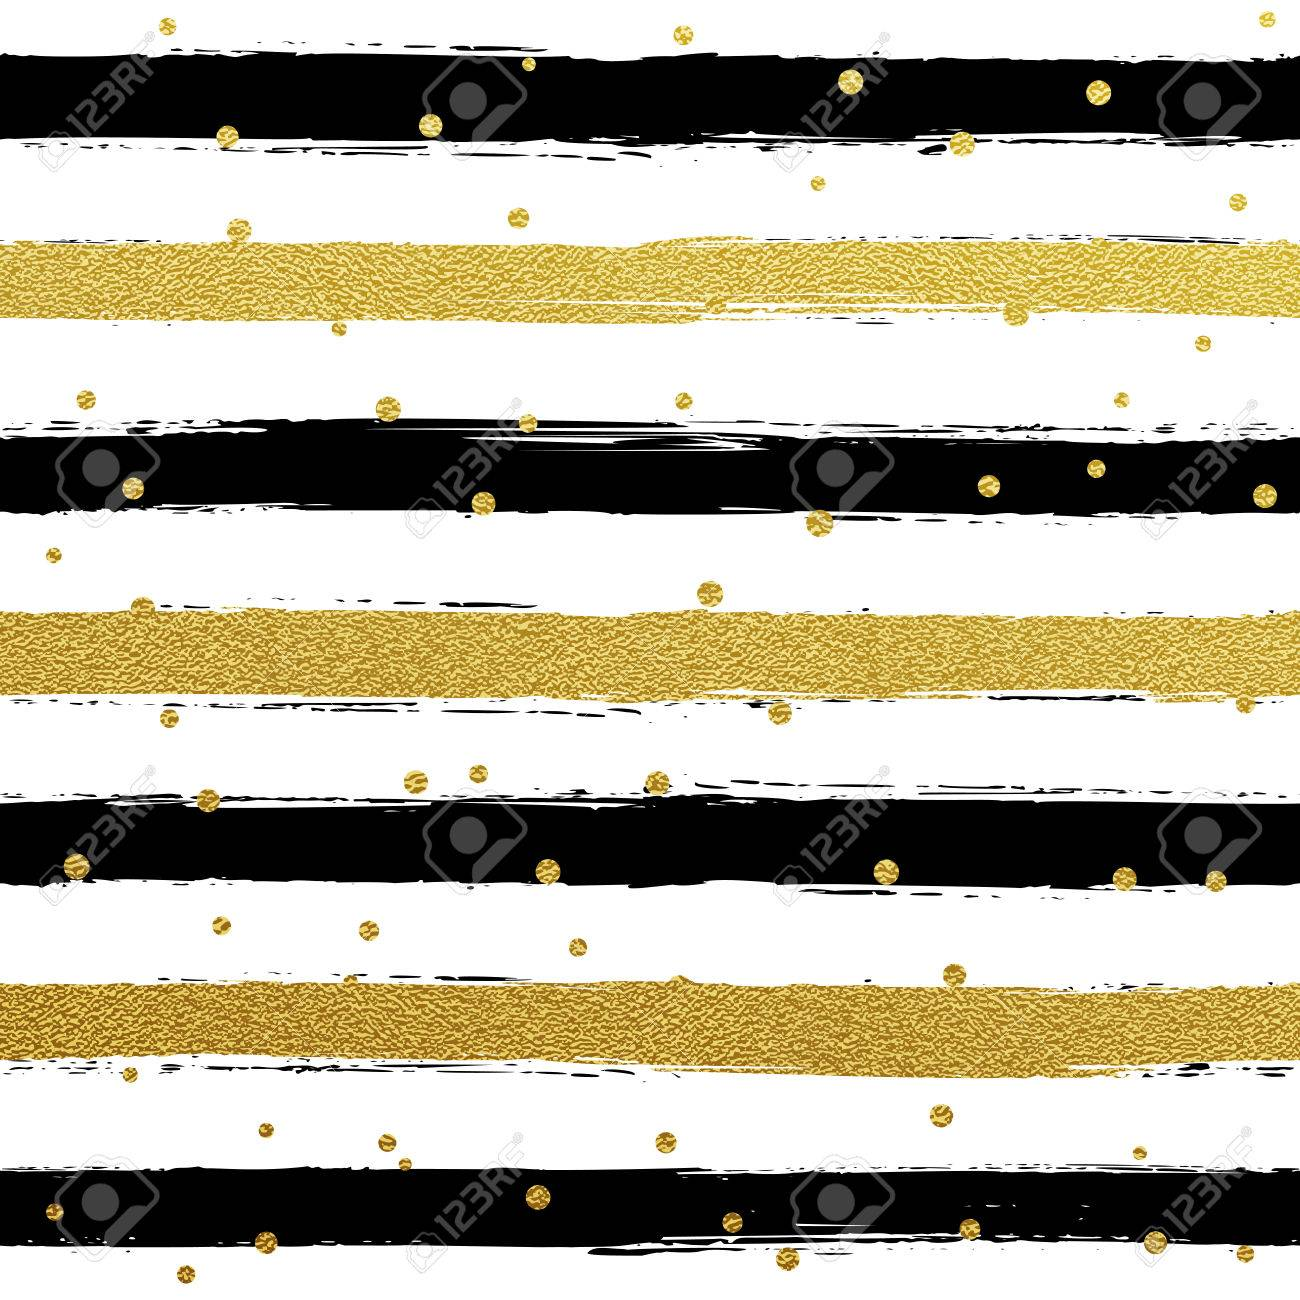 Glitter Gold Striped Wallpaper Paint Brush Strokes Background Royalty Free Cliparts Vectors And Stock Illustration Image 57341637